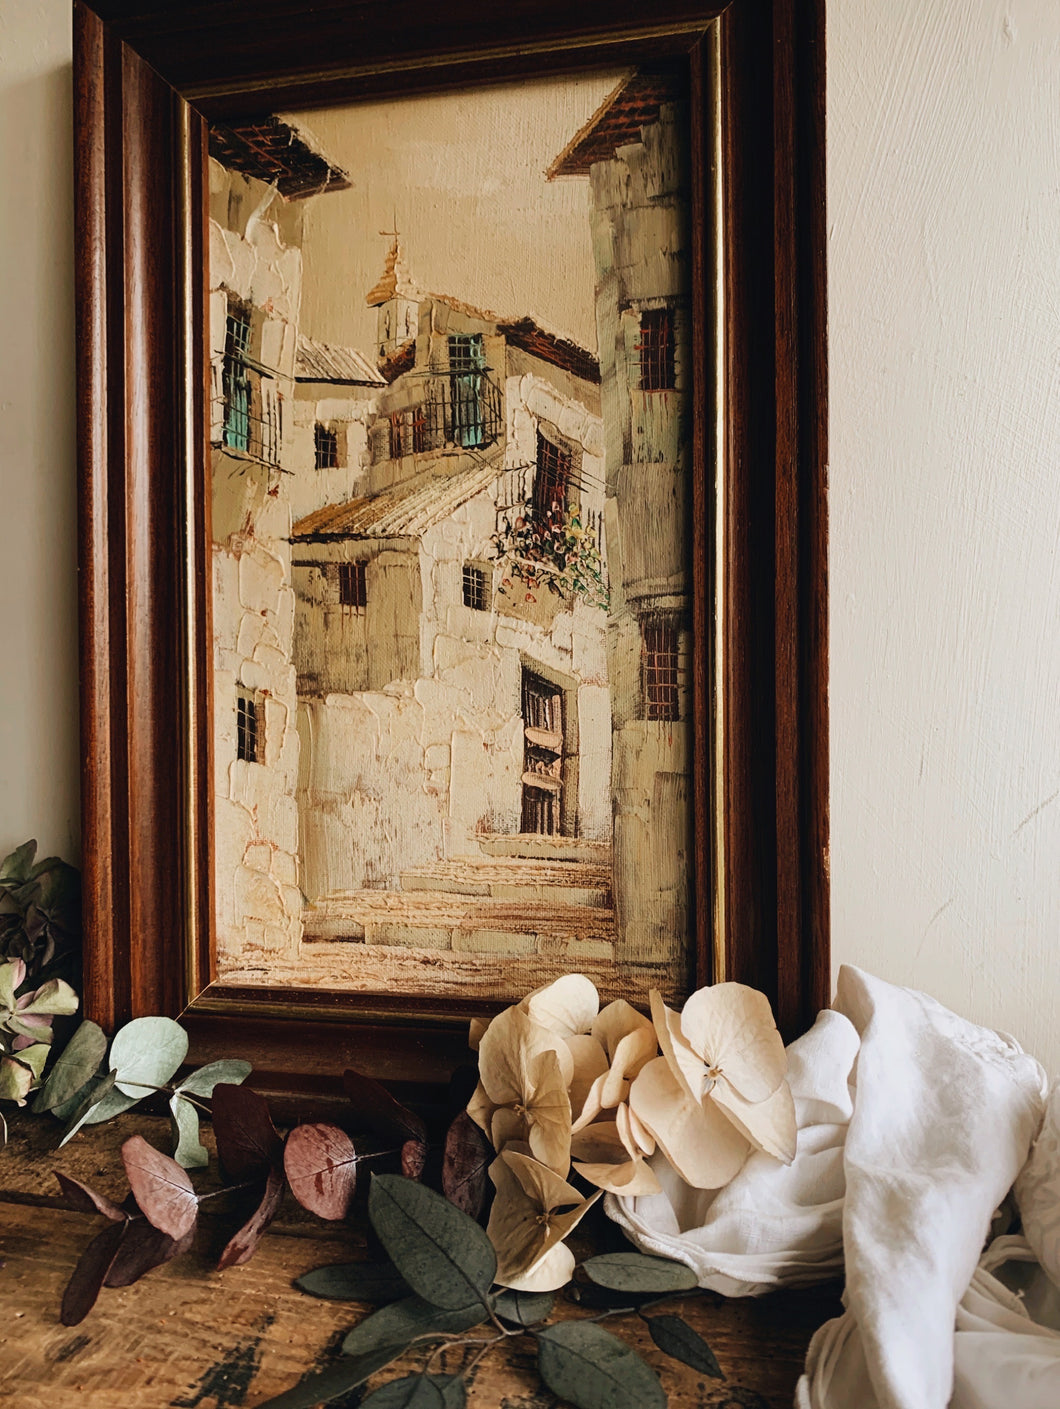 Rustic French (depicted town) Painting in Frame